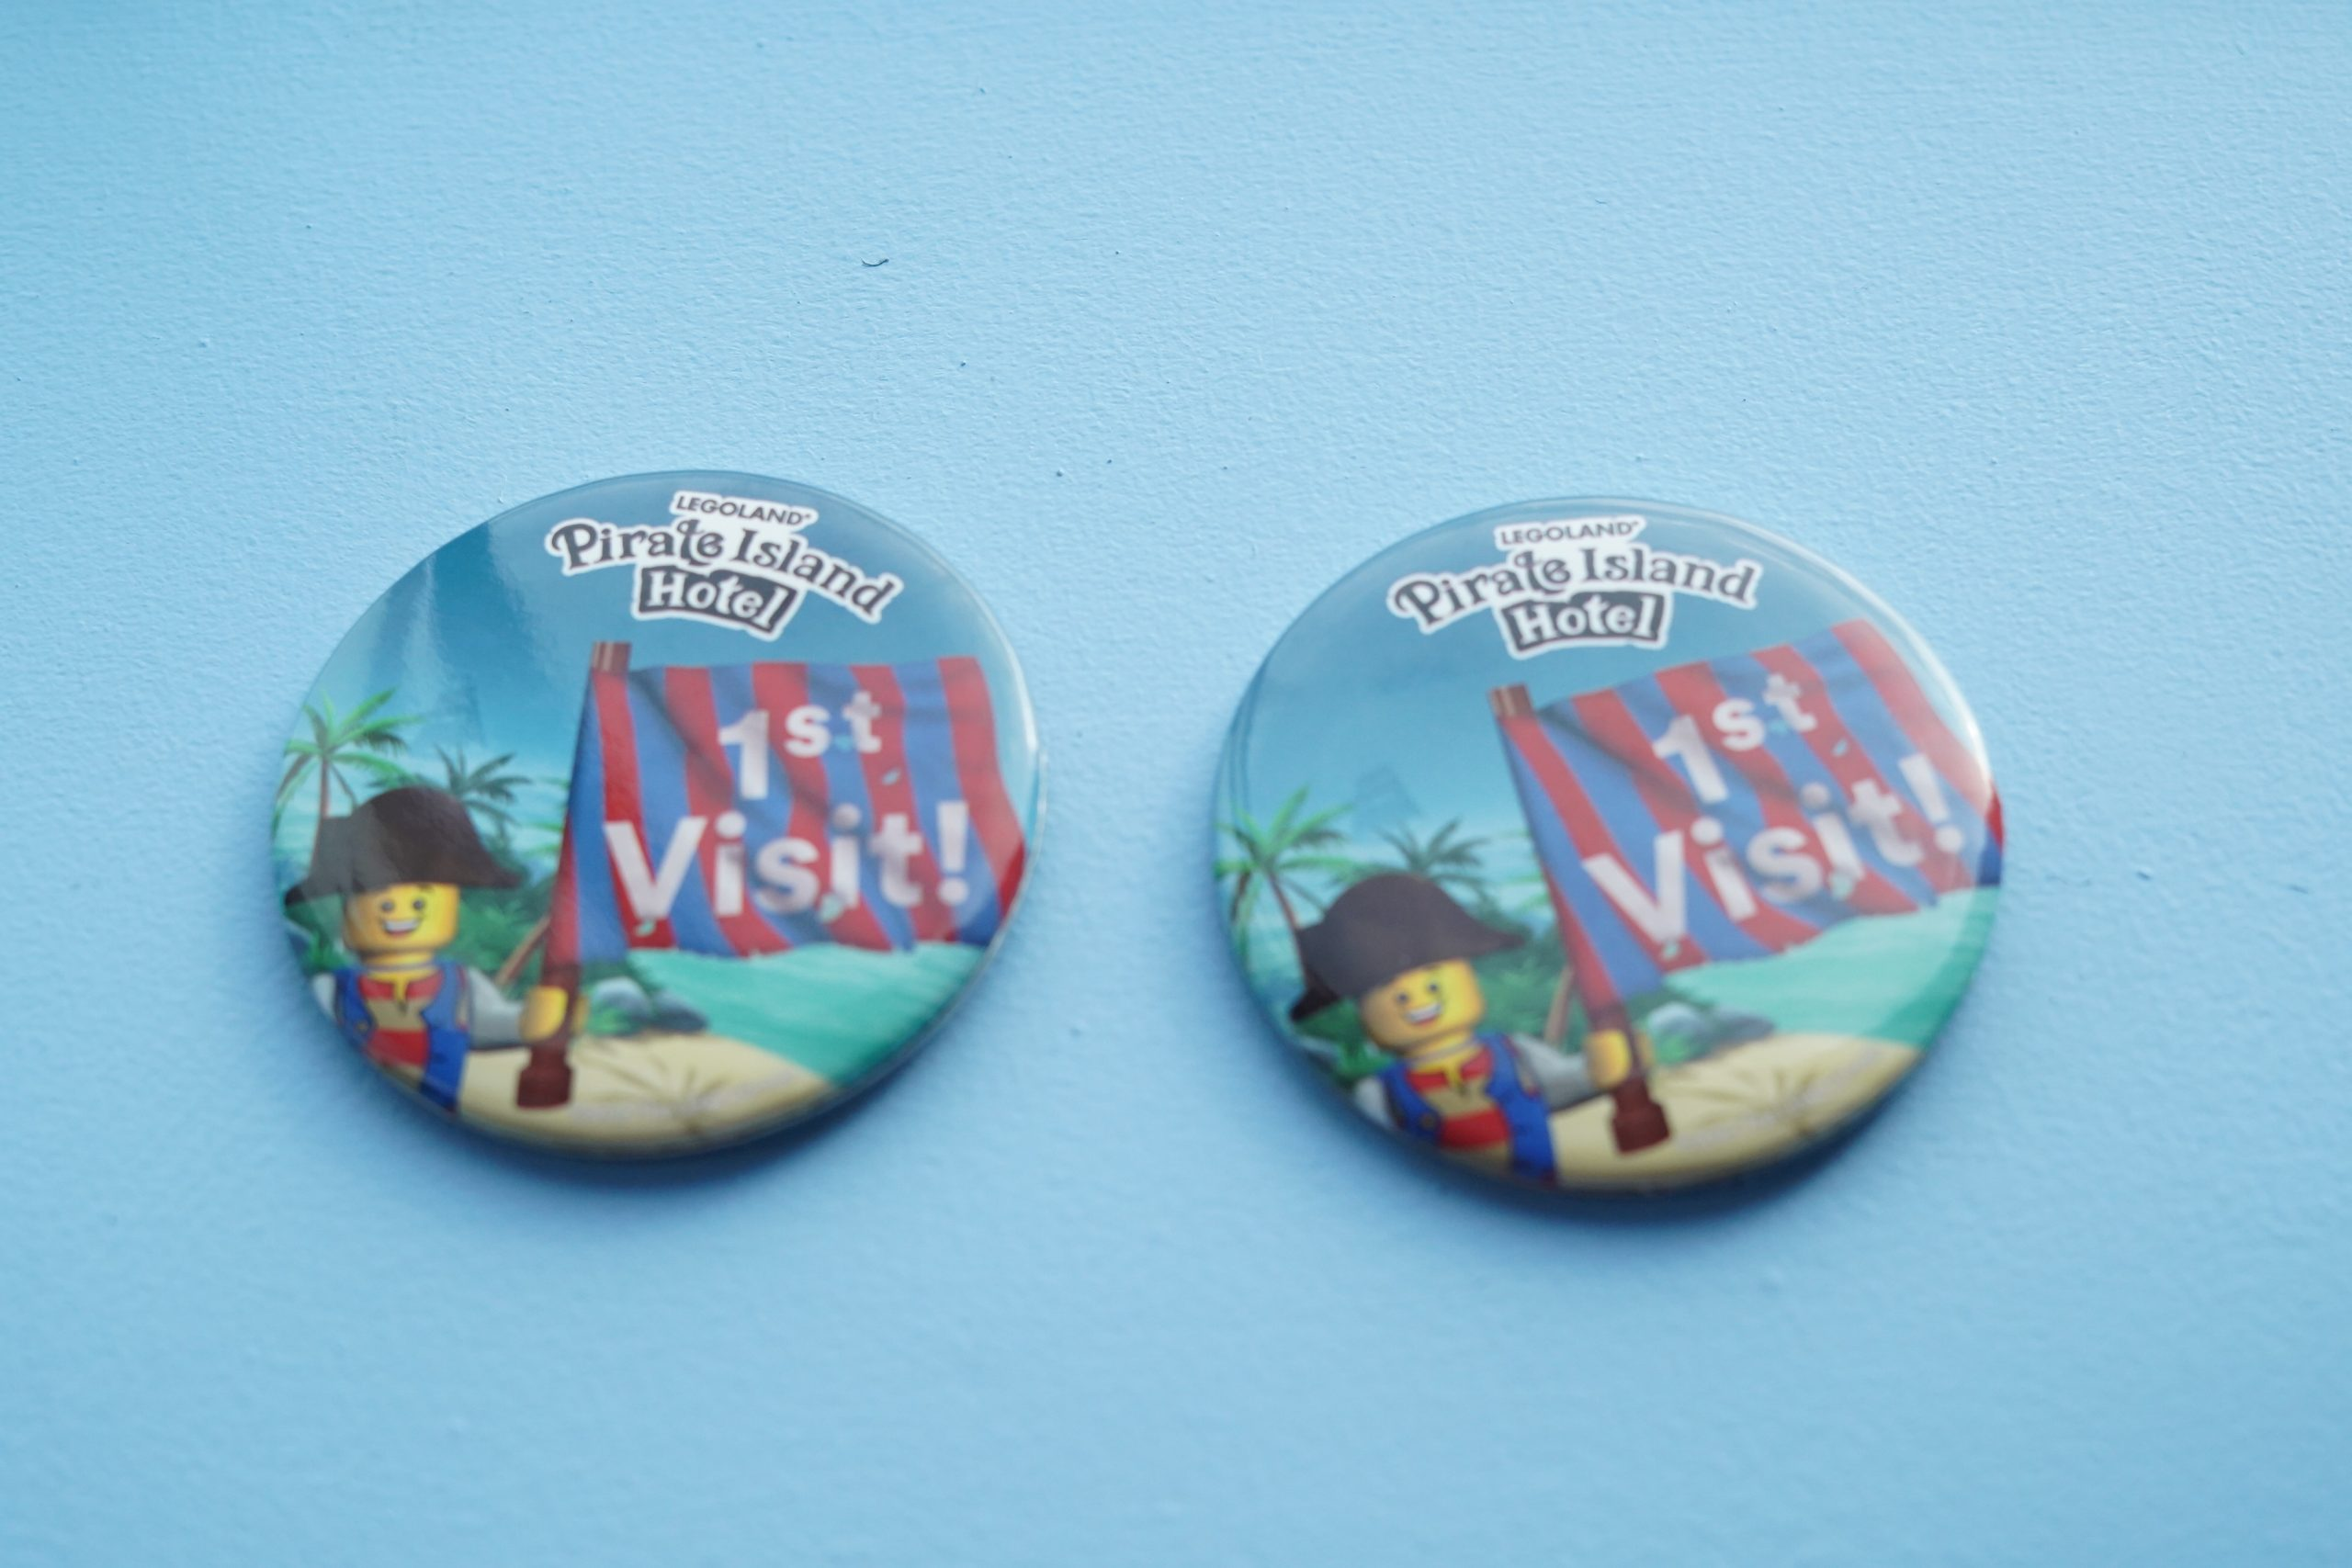 Two Pirate Island Hotel 1st visit pins.   A Guide to LEGOLAND Hotels in Florida